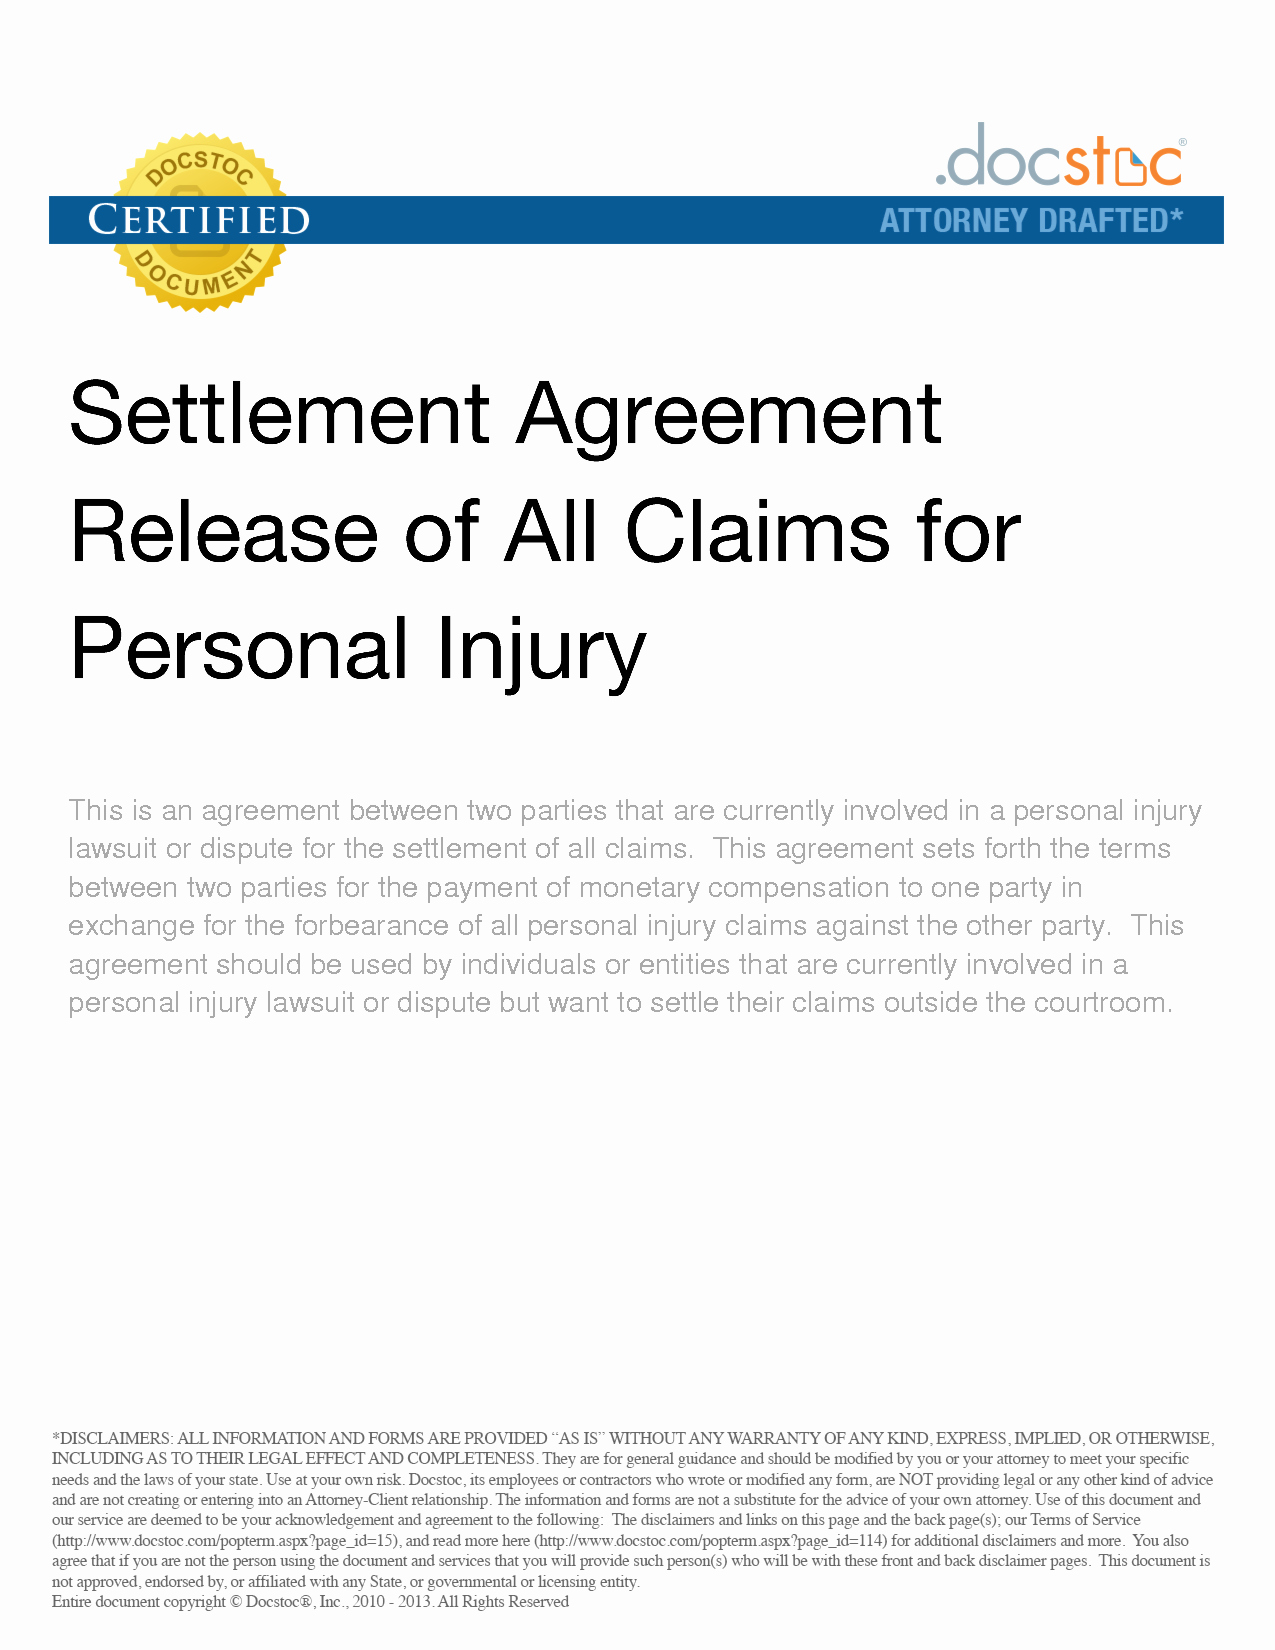 Personal Injury Waiver form Elegant 9 Best Of Settlement Agreement and Release